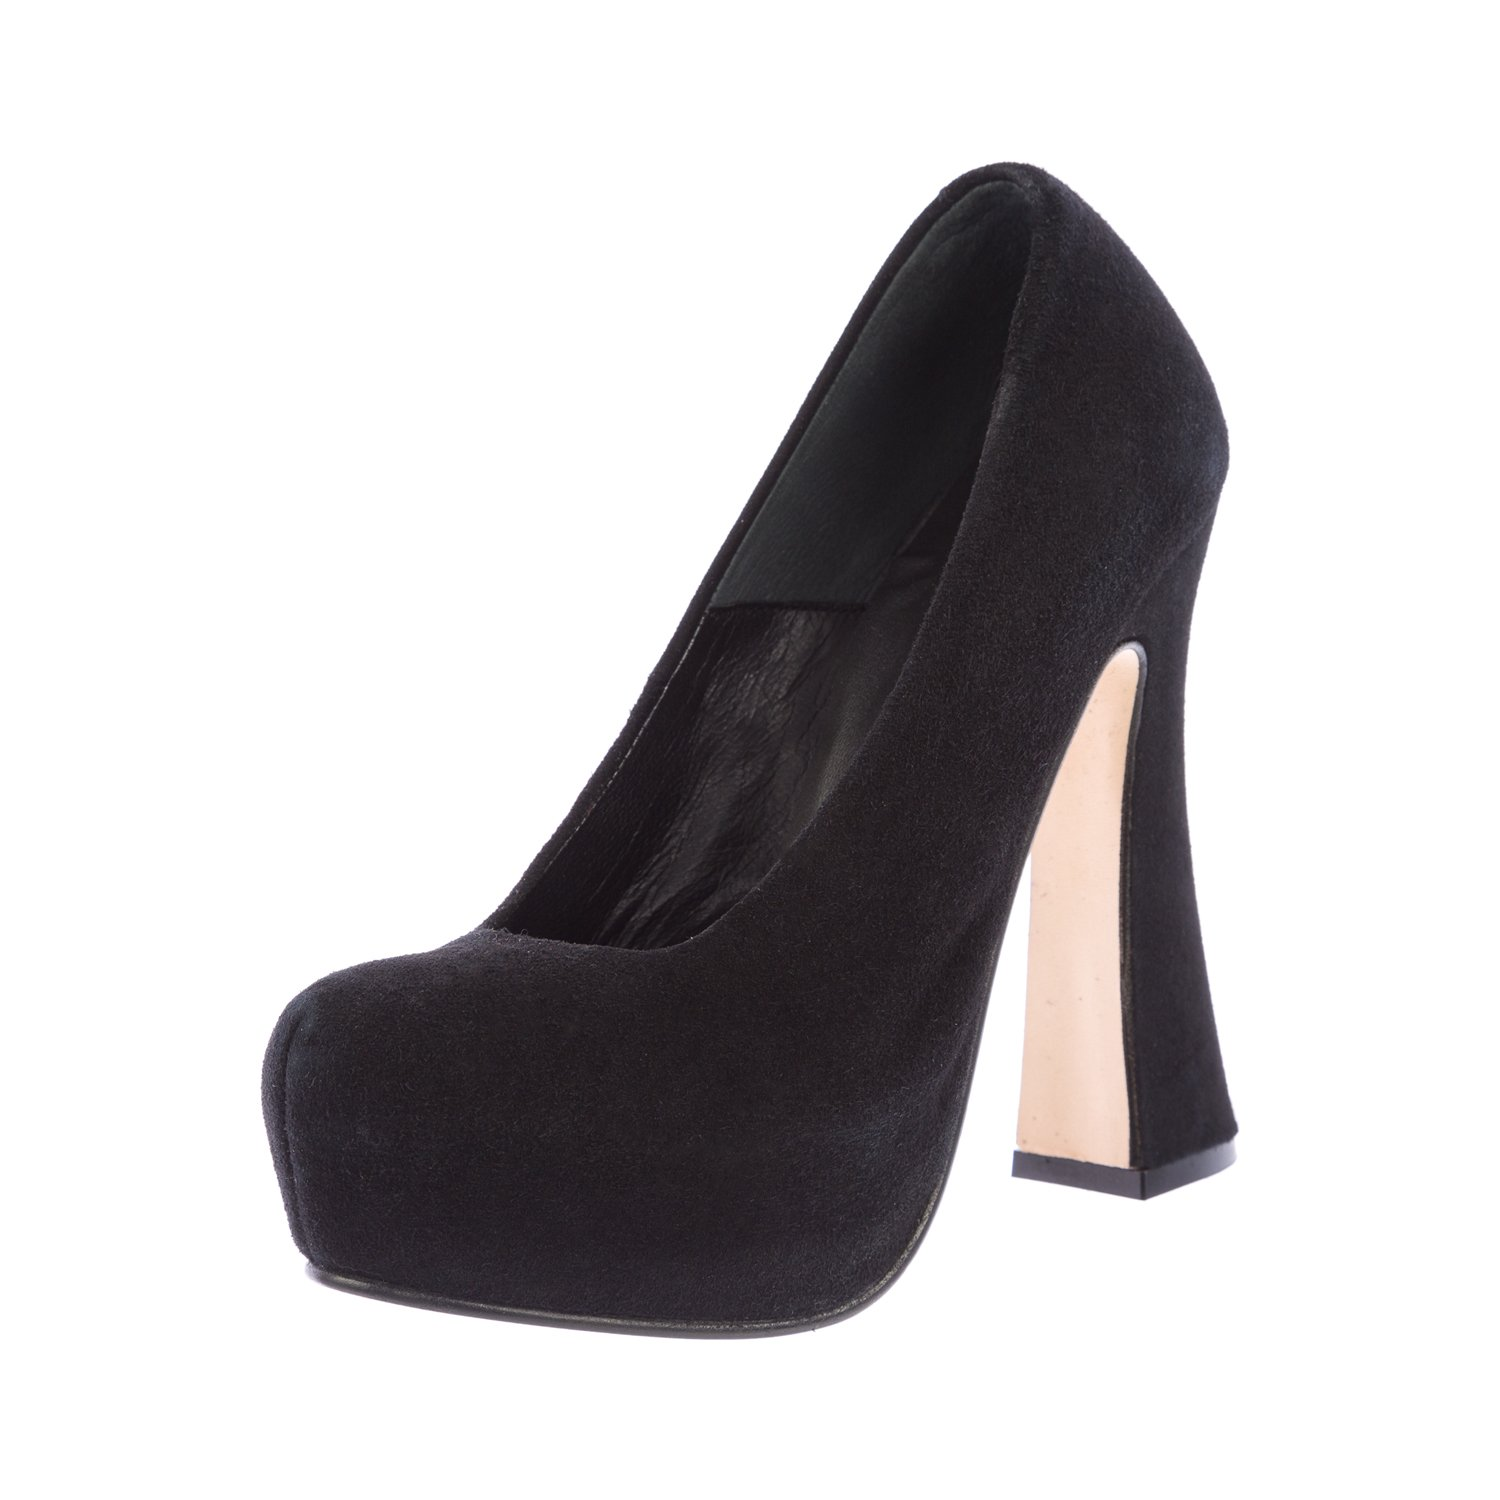 Surface to Air Women's Suede Hydra High V2 Platform Pumps Size 5.5 Black